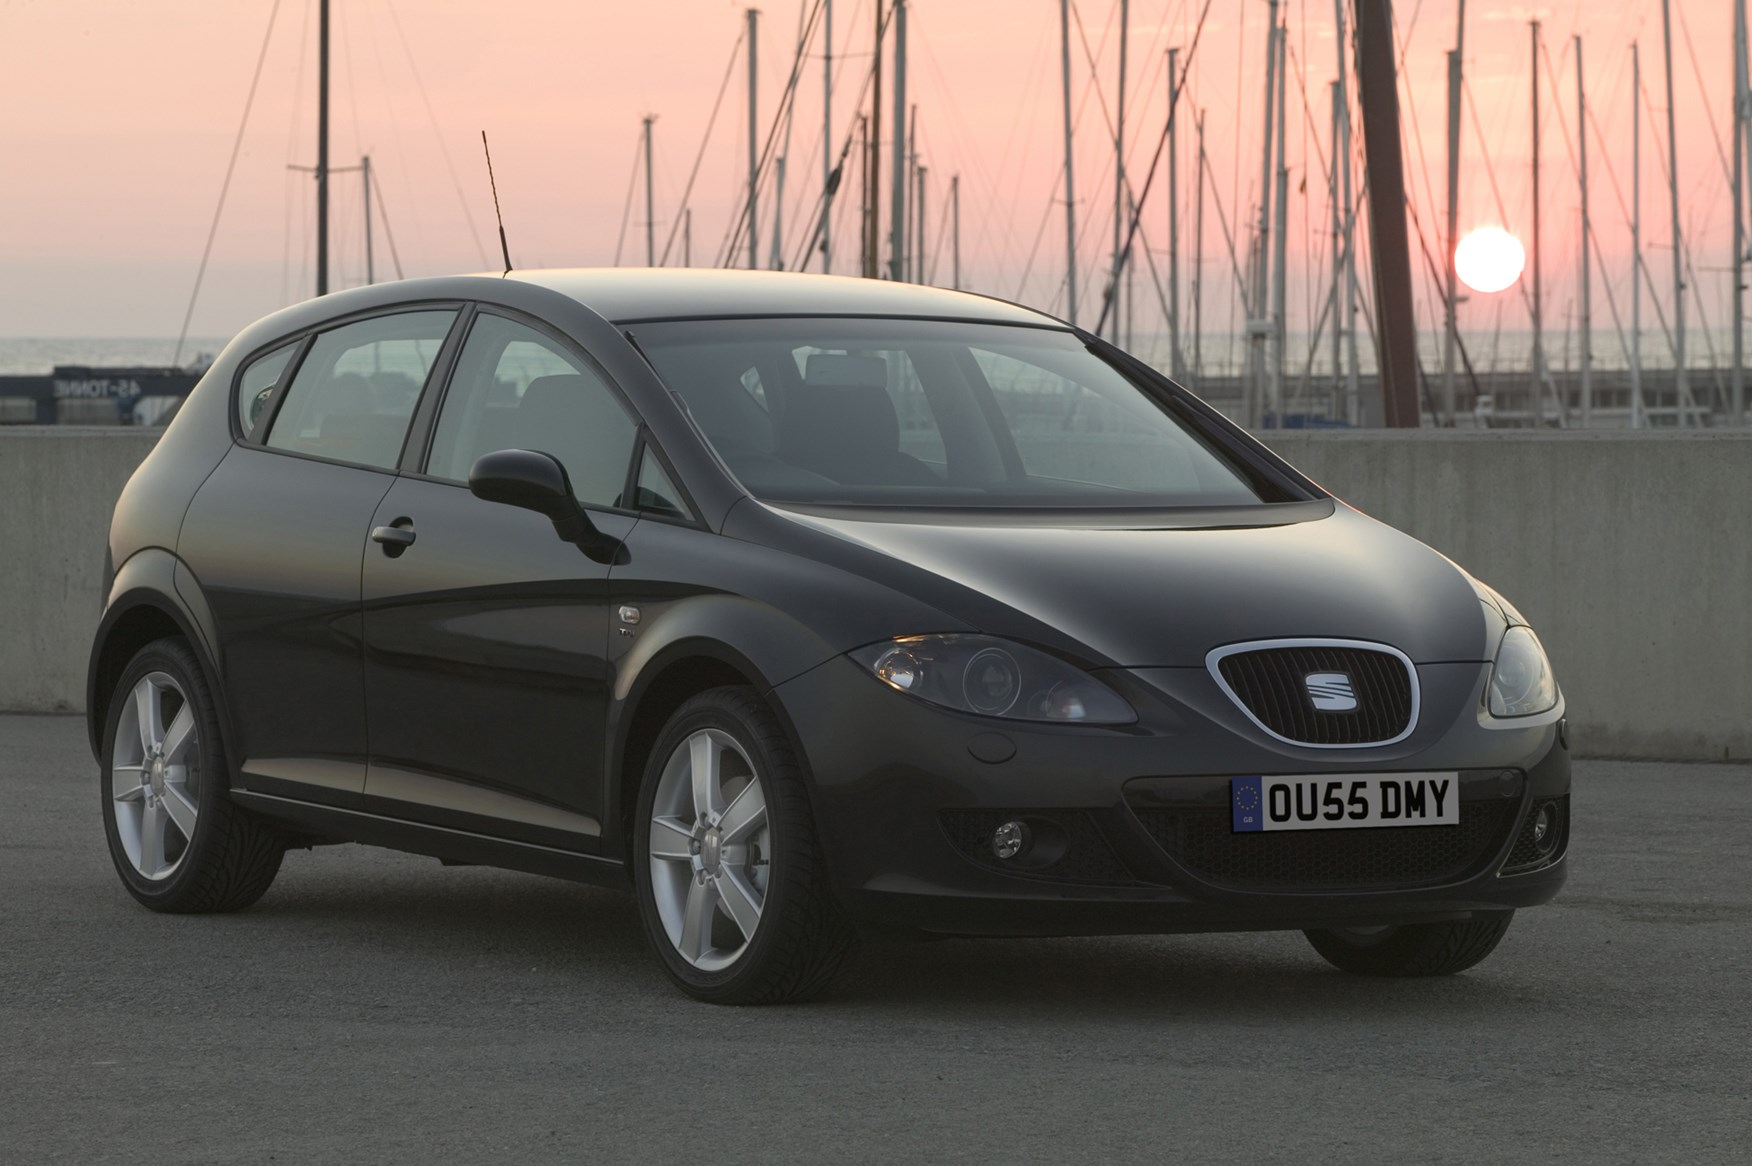 seat leon hatchback 2005 2012 photos parkers. Black Bedroom Furniture Sets. Home Design Ideas